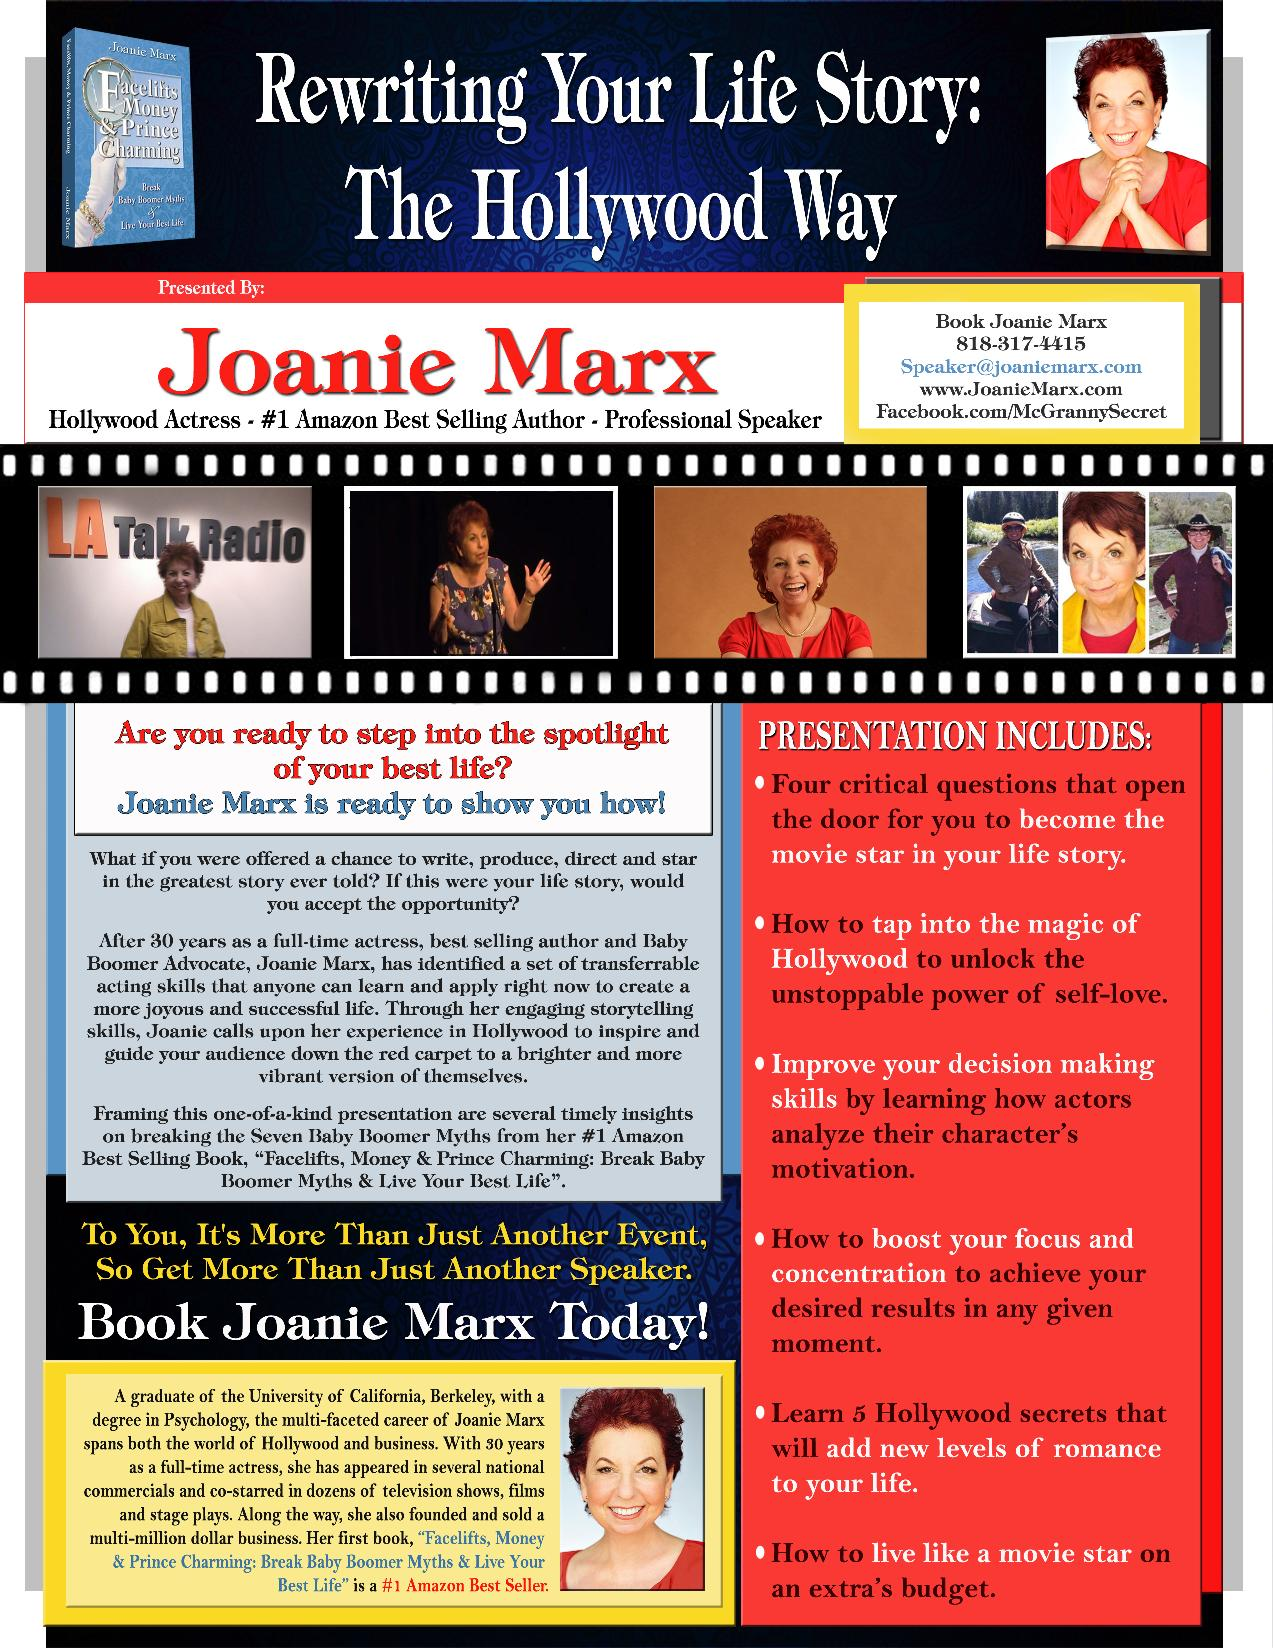 Joanie Marx Presentation-Topic-Rewriting-Your-Life-Story-The-Hollywood-Way-Joanie-Marx-2016 Interview Sheet & Presentation Sheets